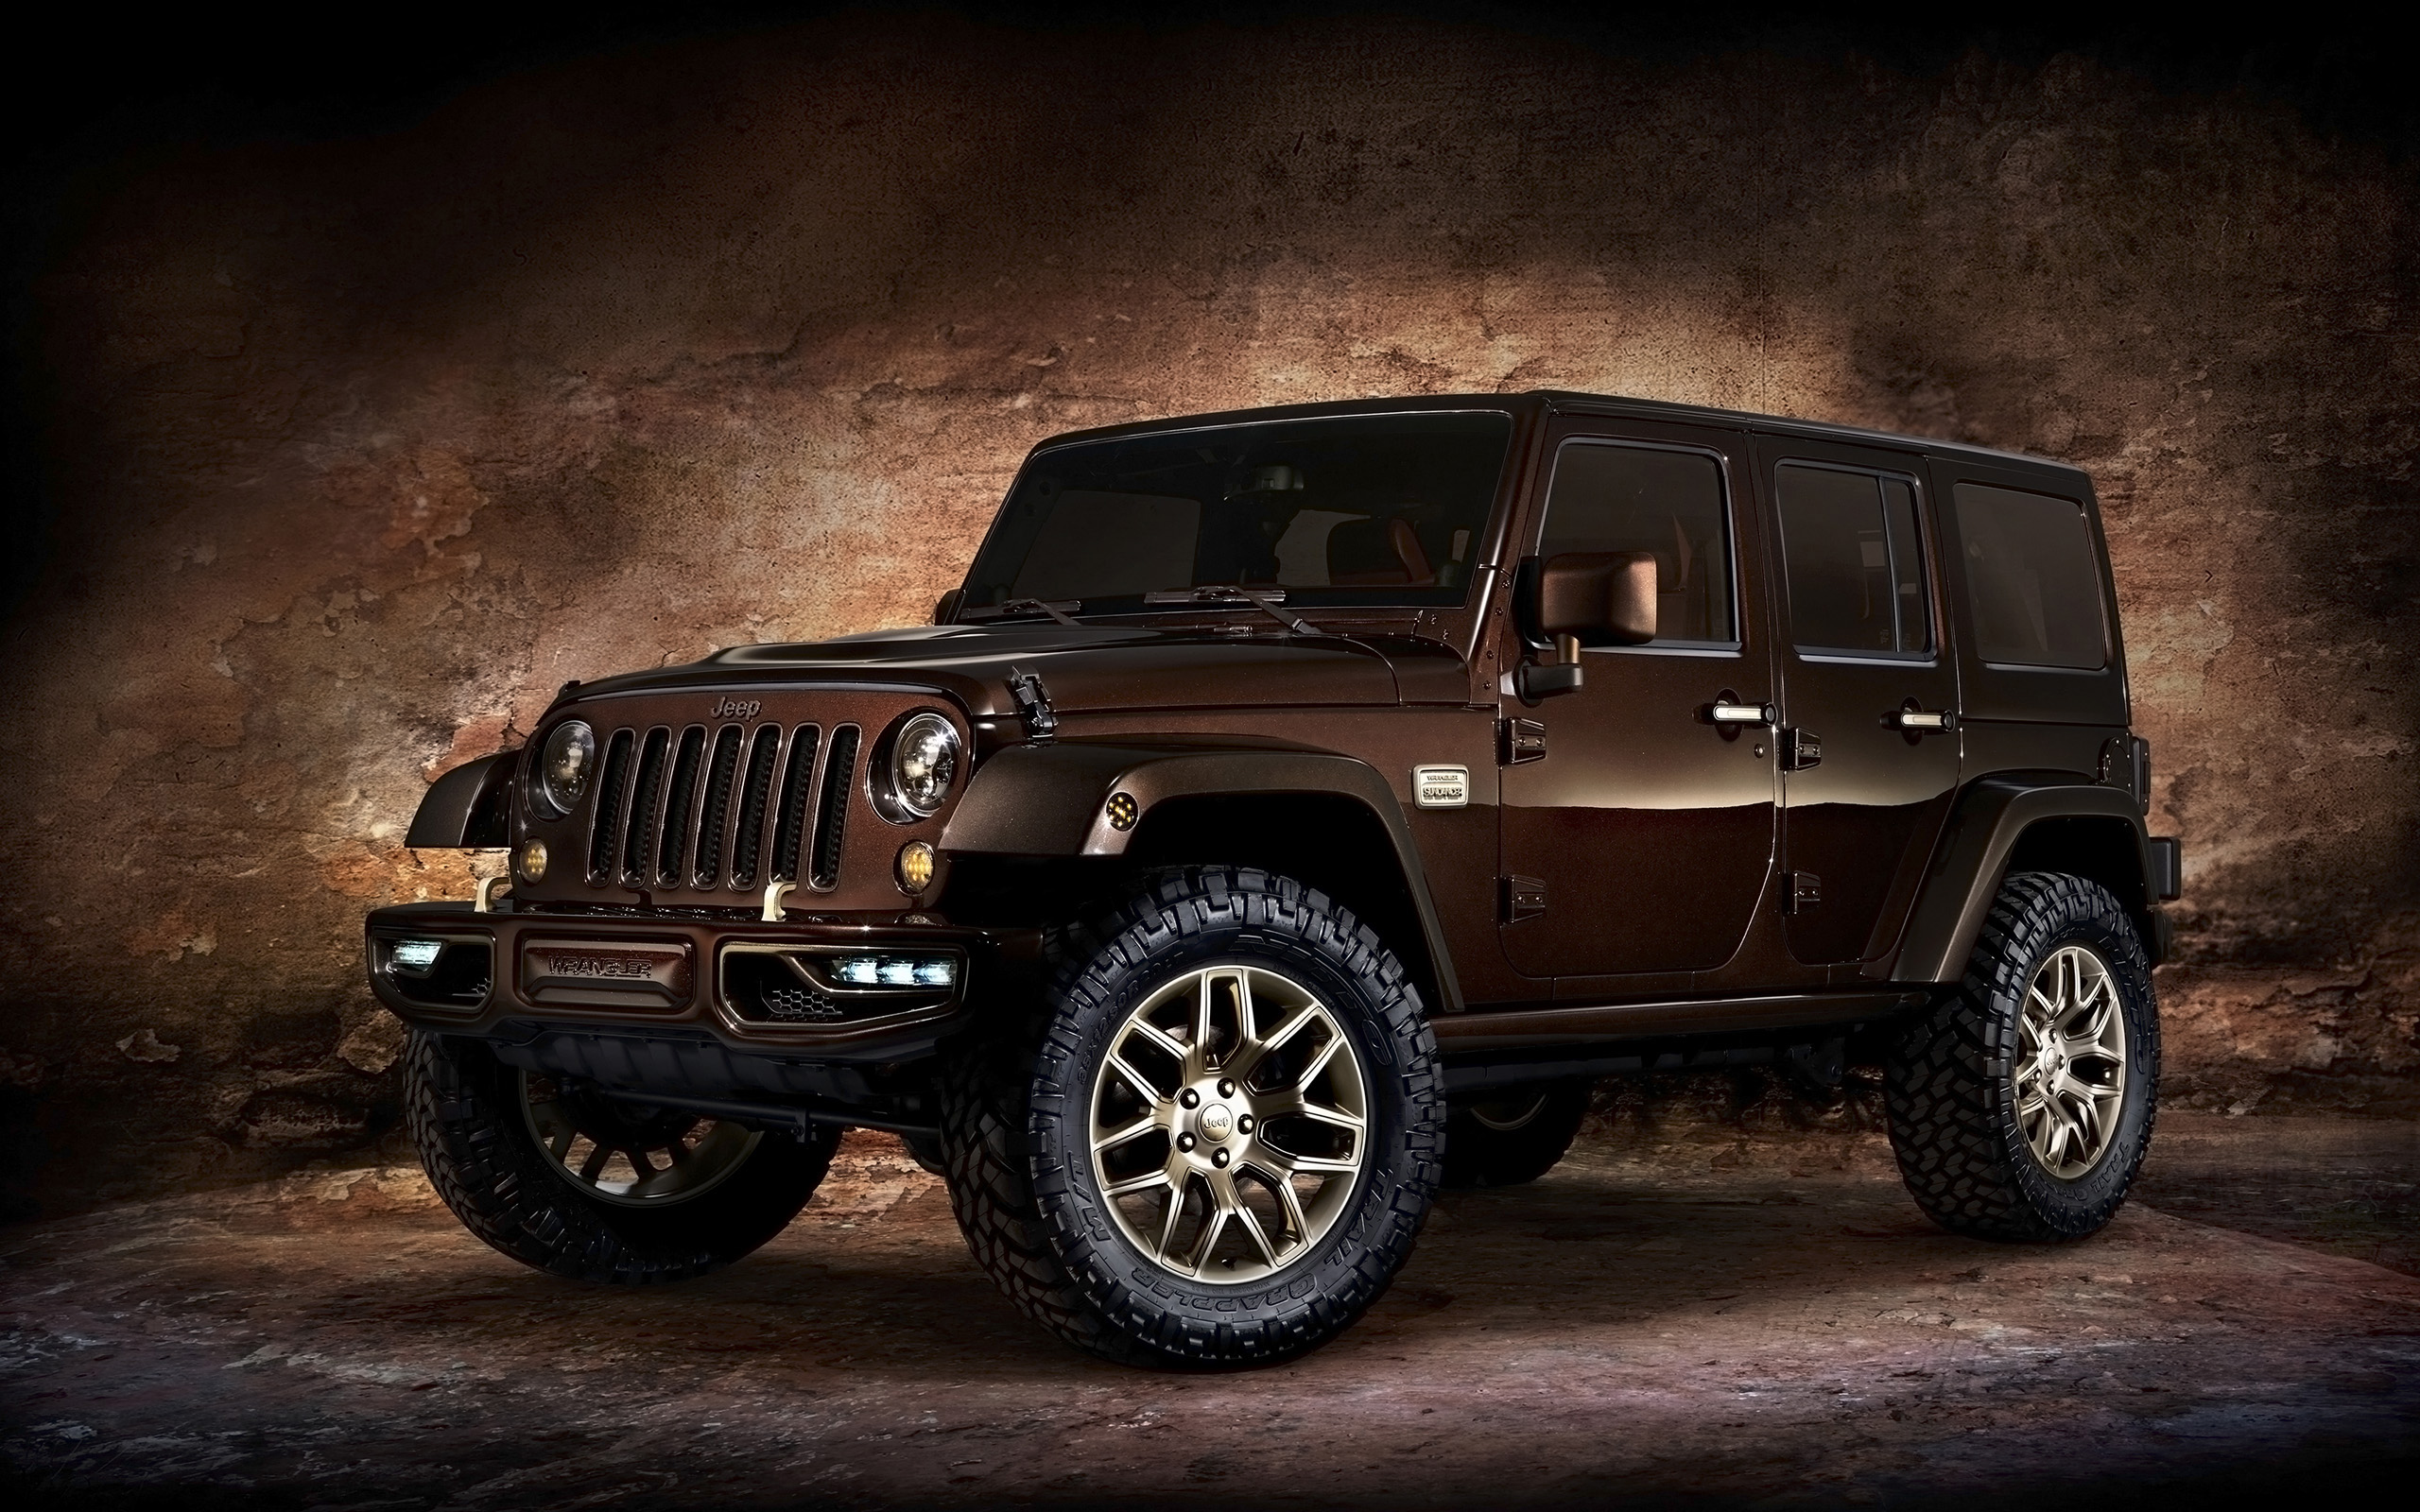 2014 Jeep Wrangler Sundancer Concept Wallpaper Hd Car